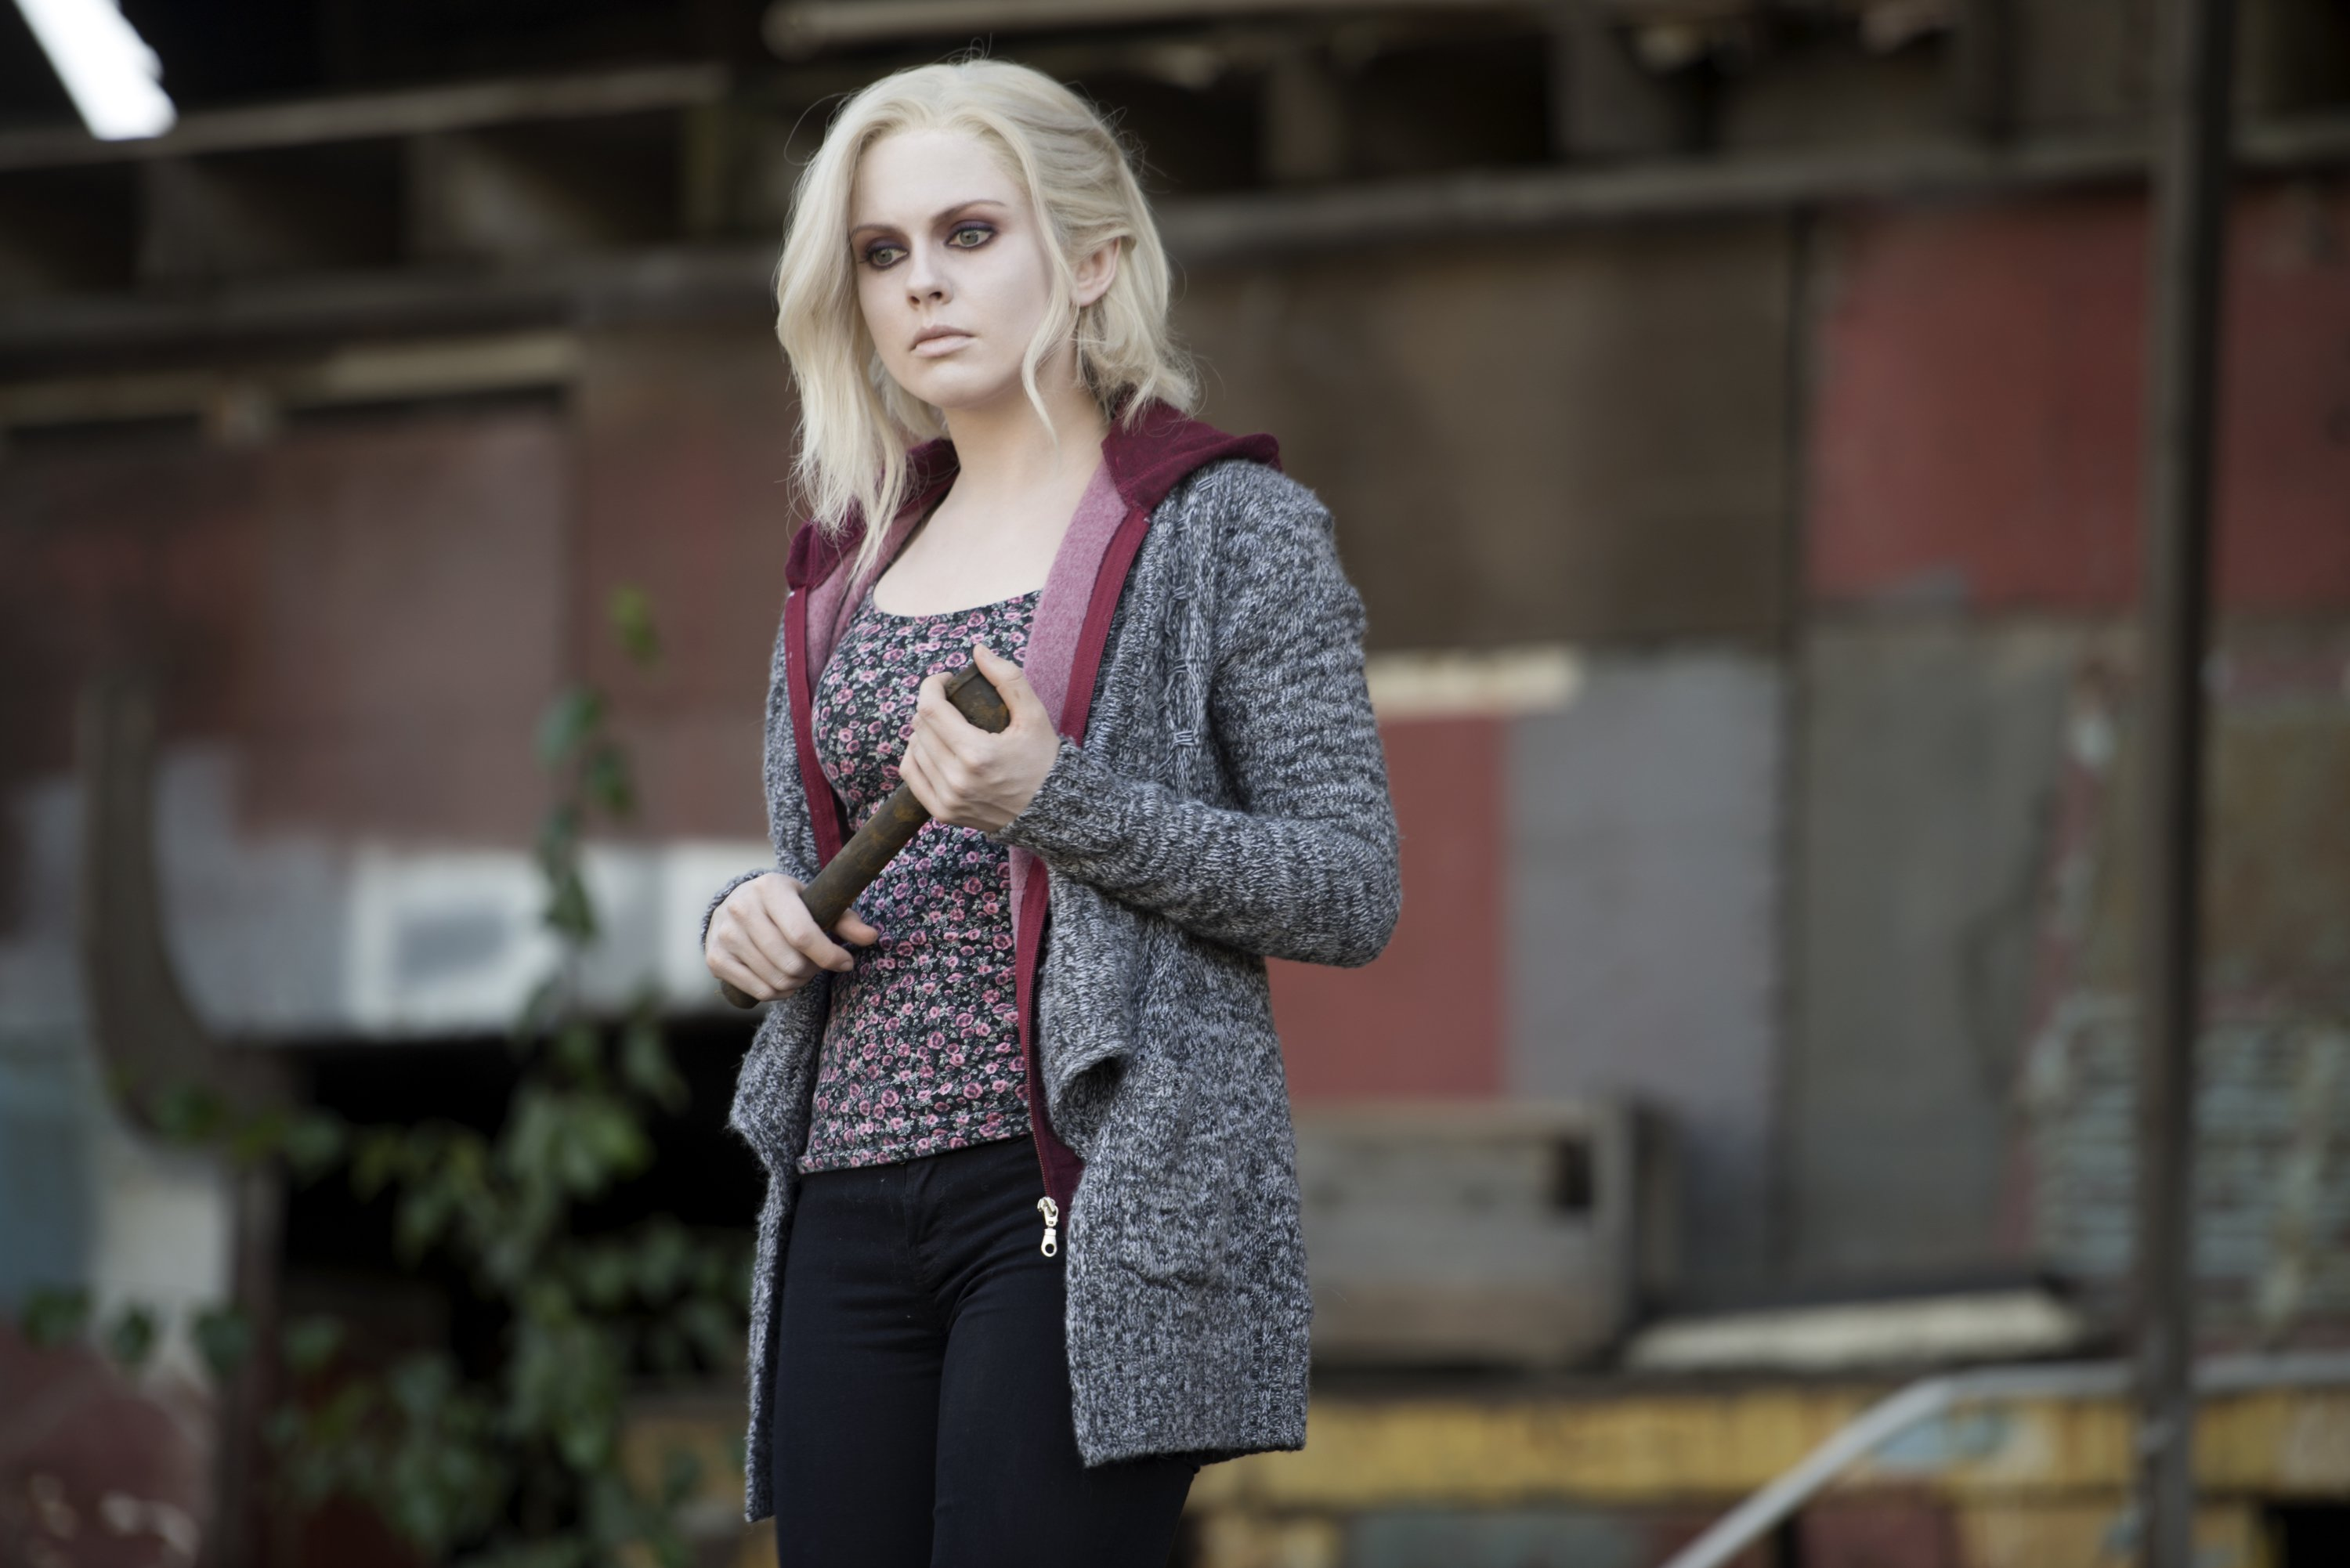 izombie, rose mclver as liv moore full hd wallpaper and background